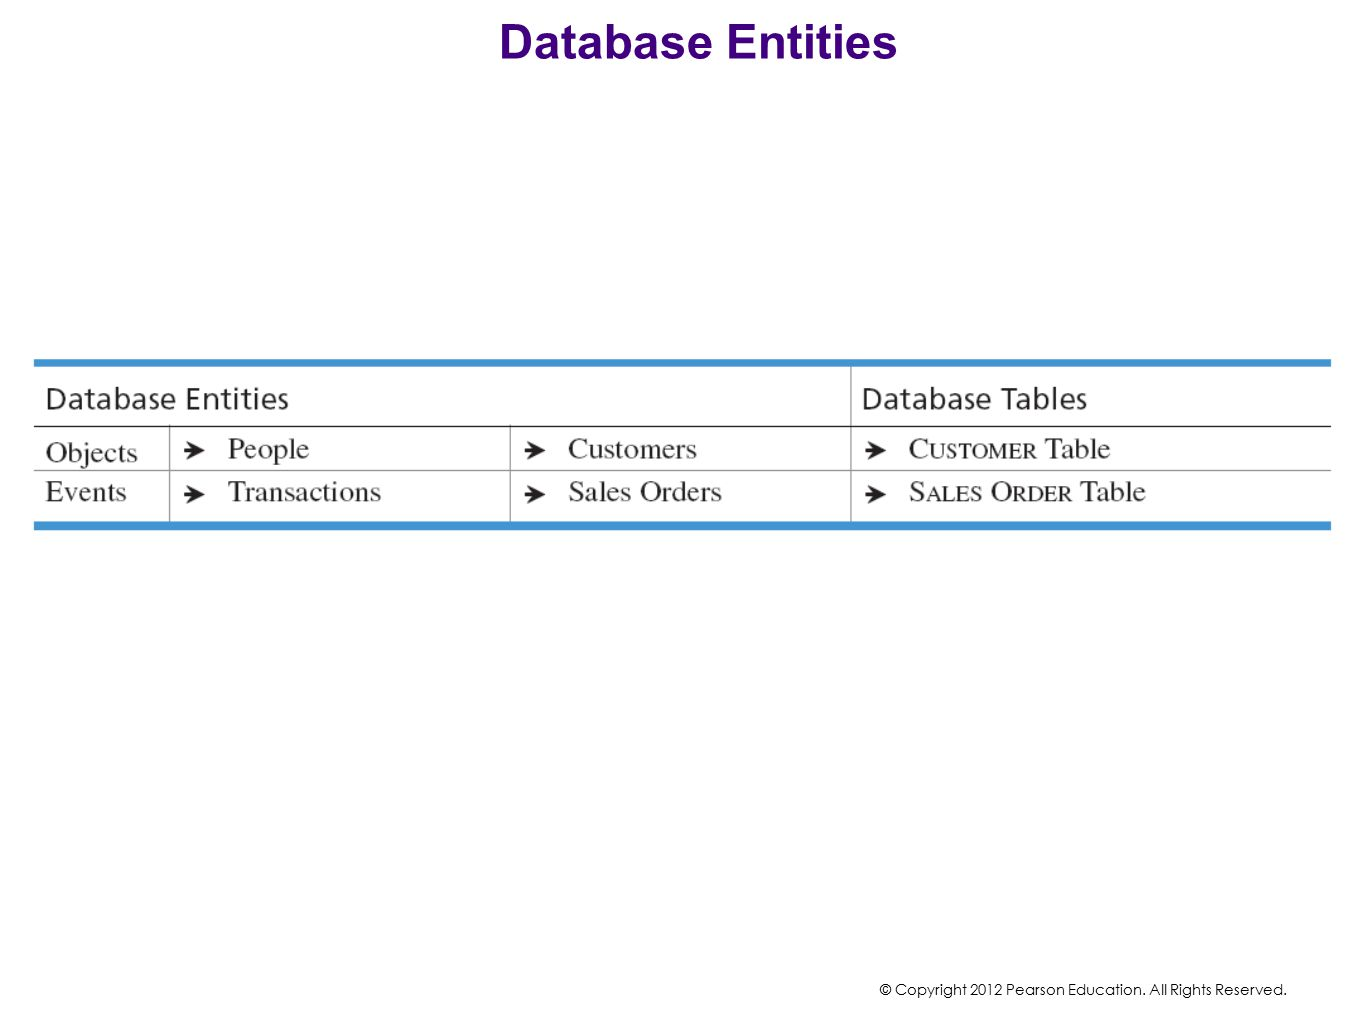 Database Entities Database Entities can be objects or events.